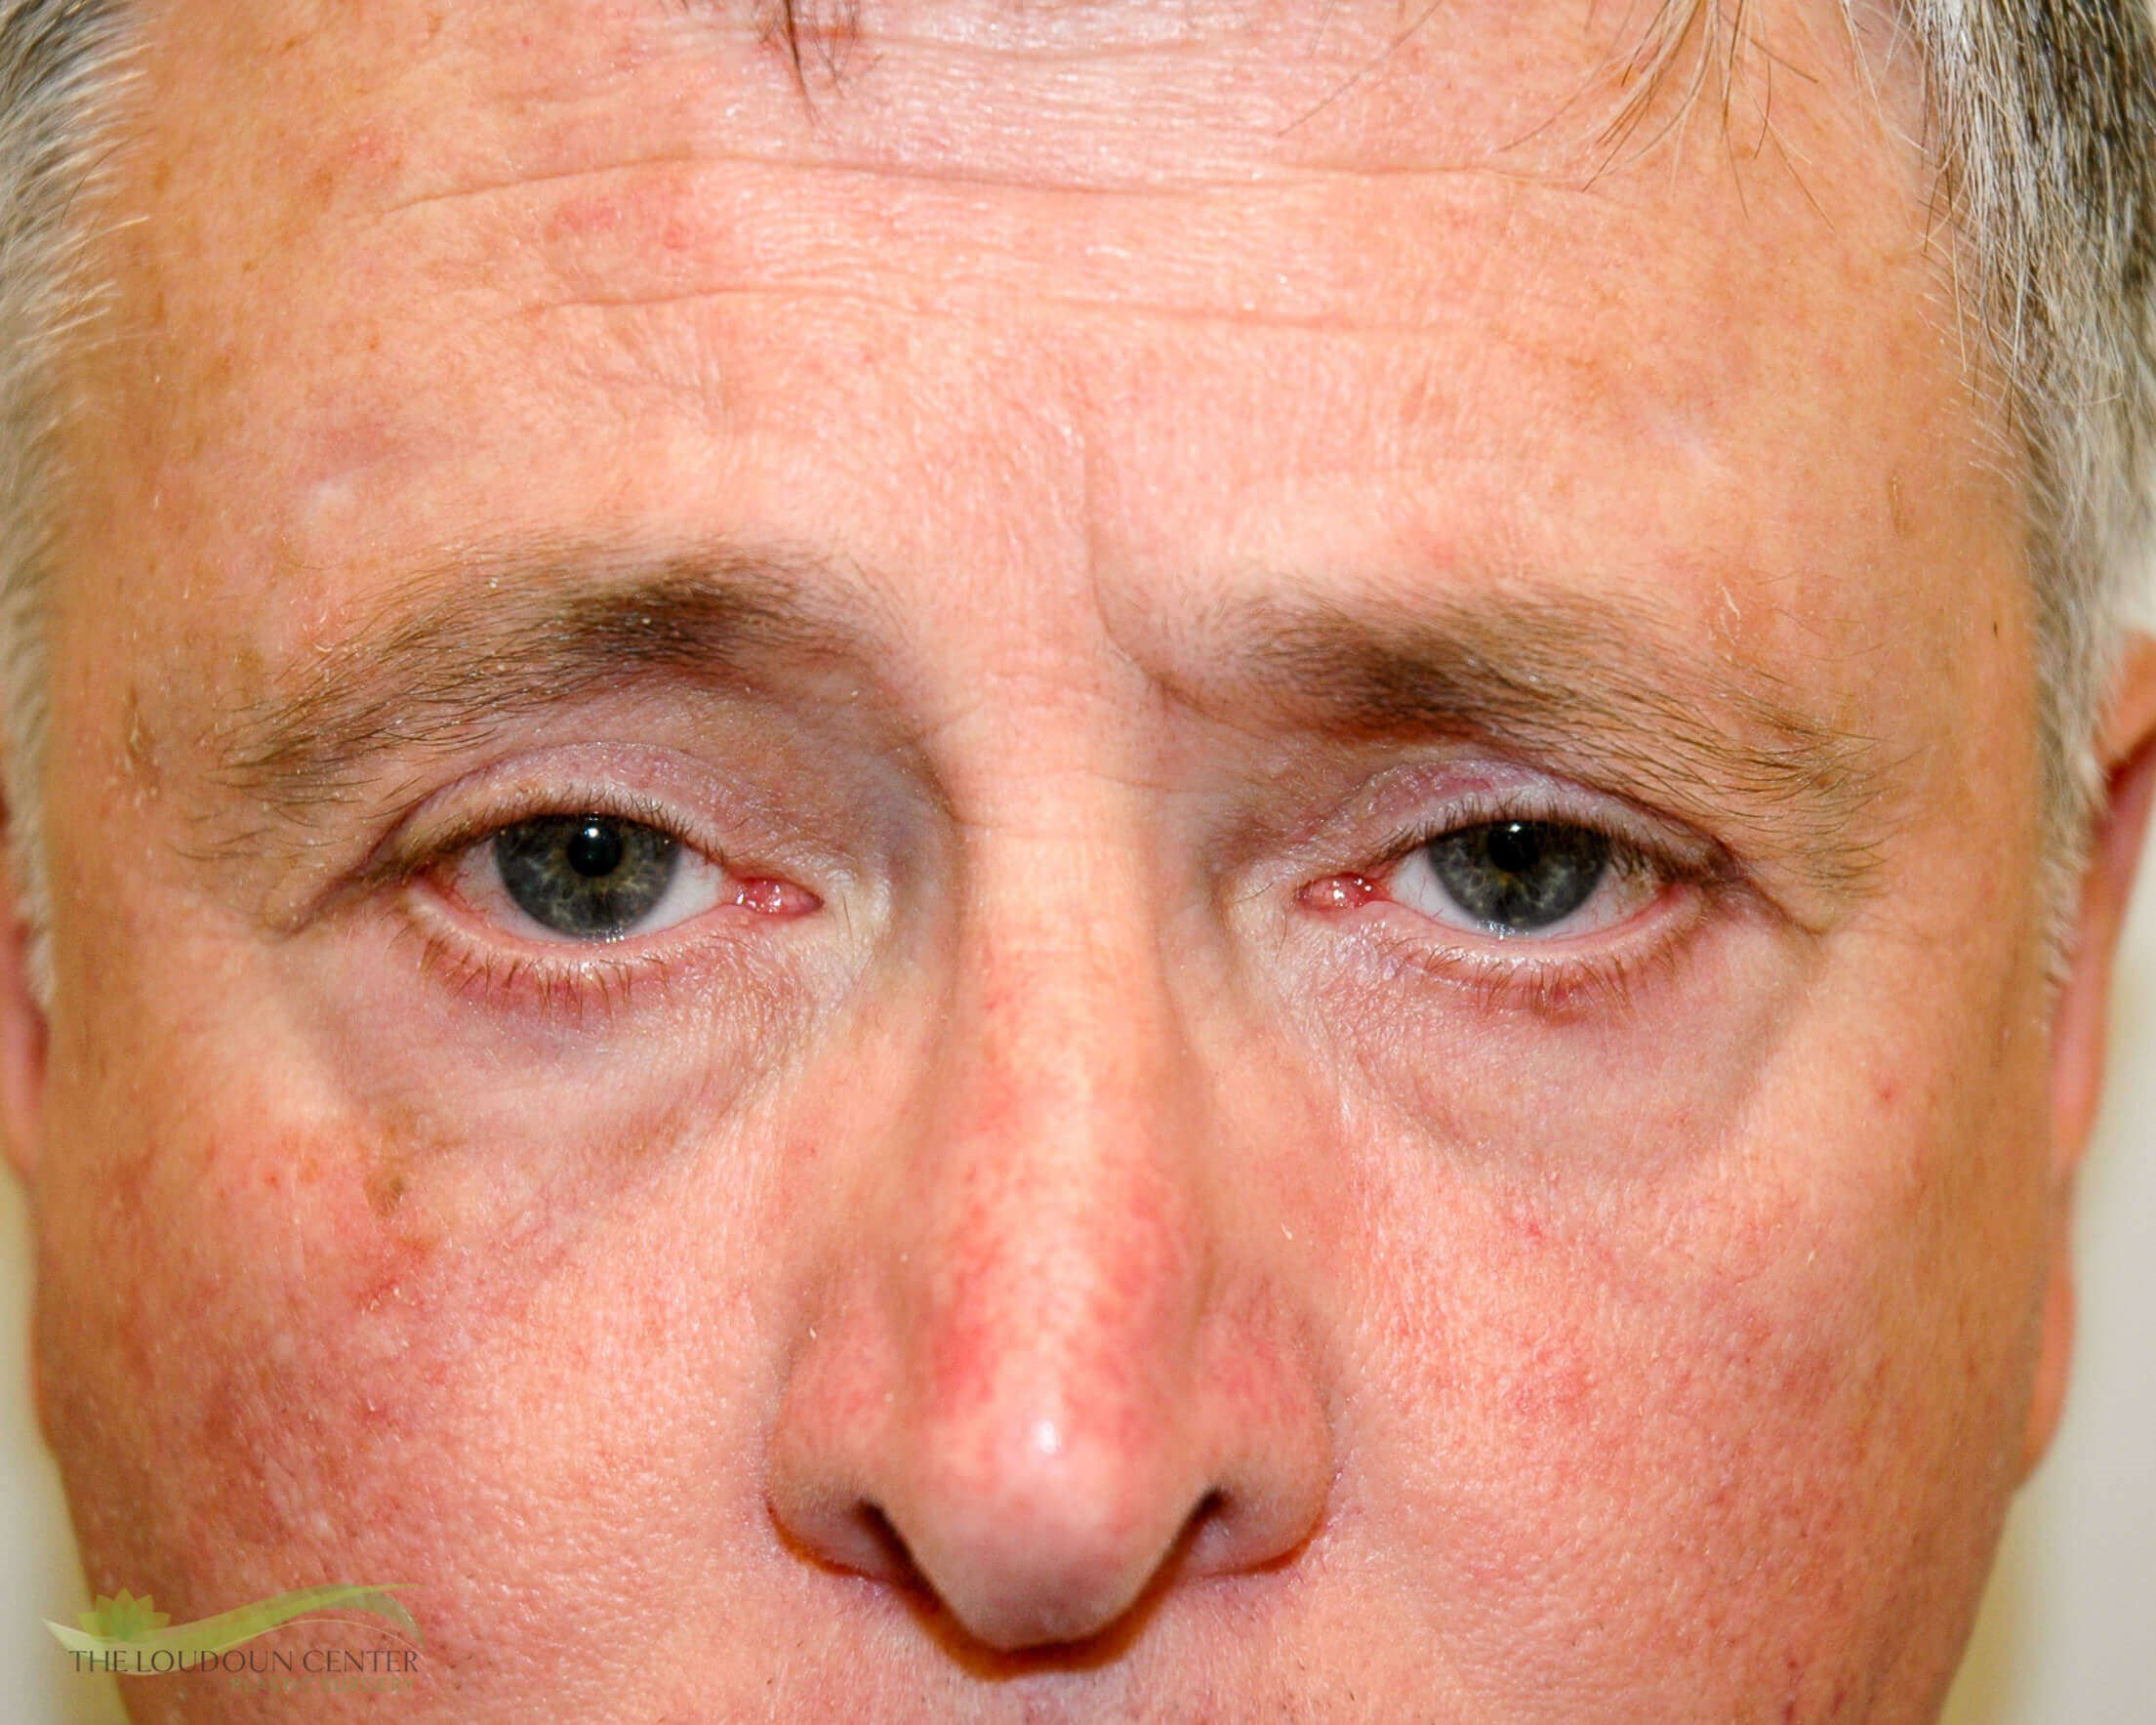 Male Upper Eyelid Surgery After